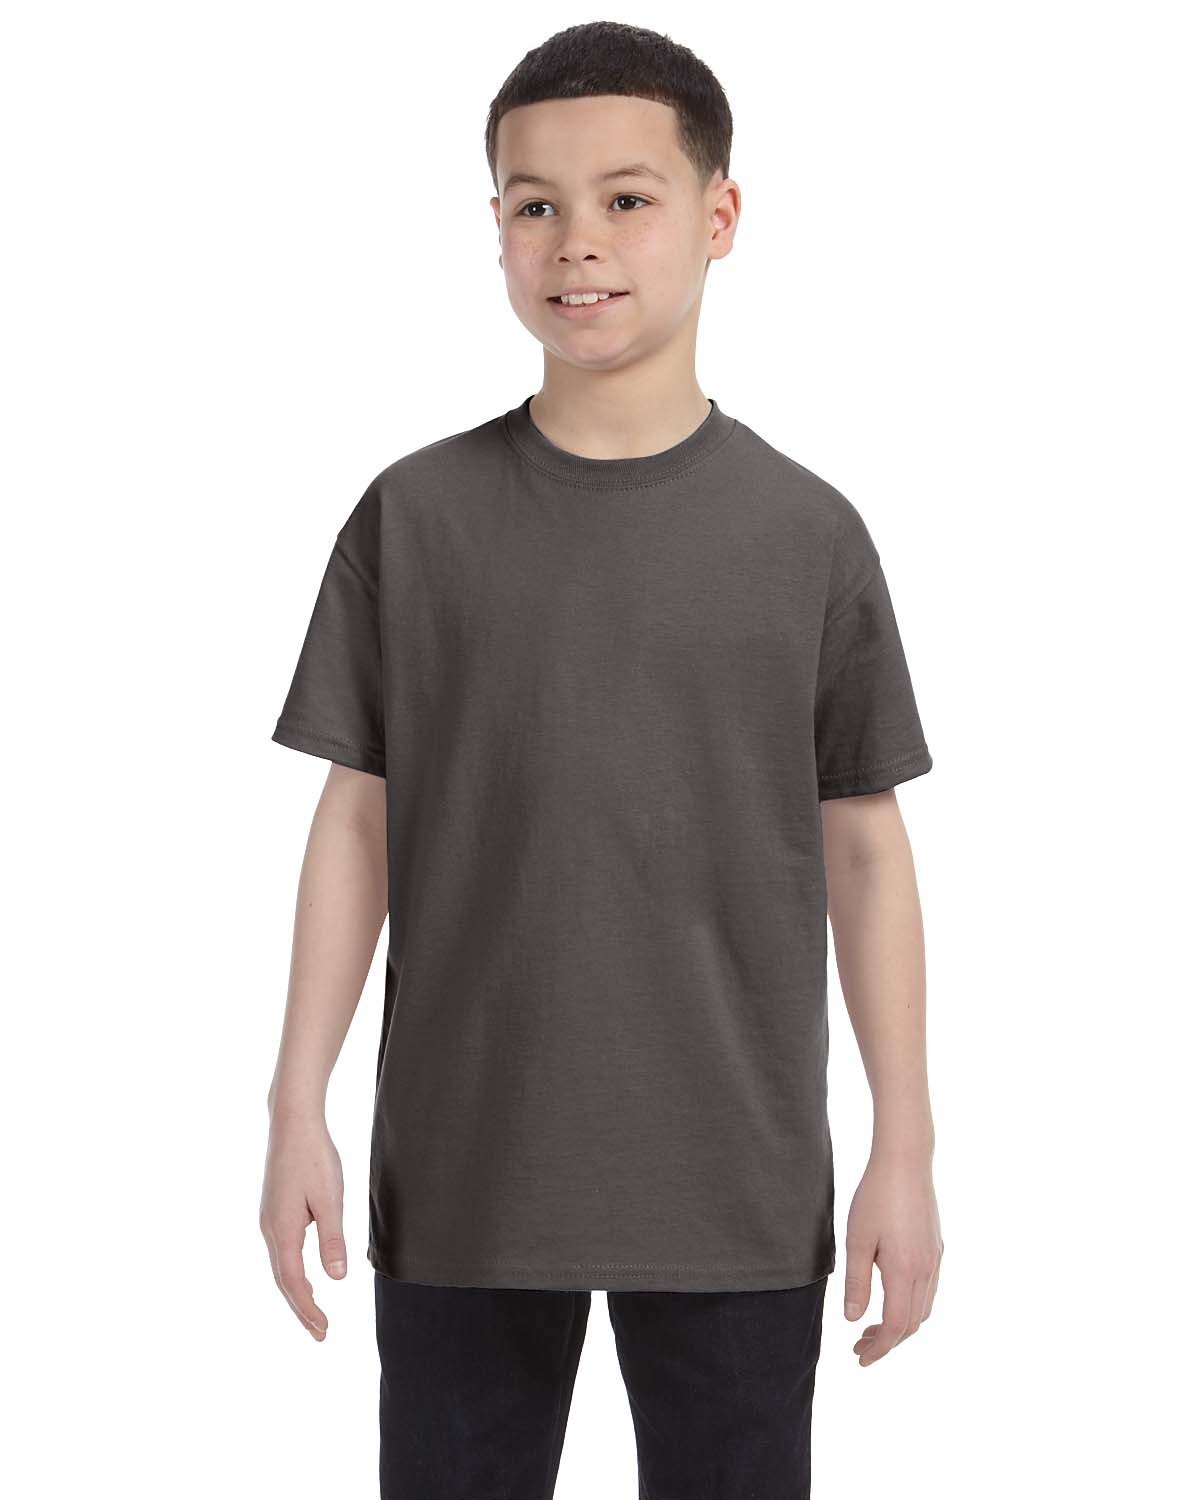 Hanes Youth Authentic-T T-Shirt SMOKE GRAY